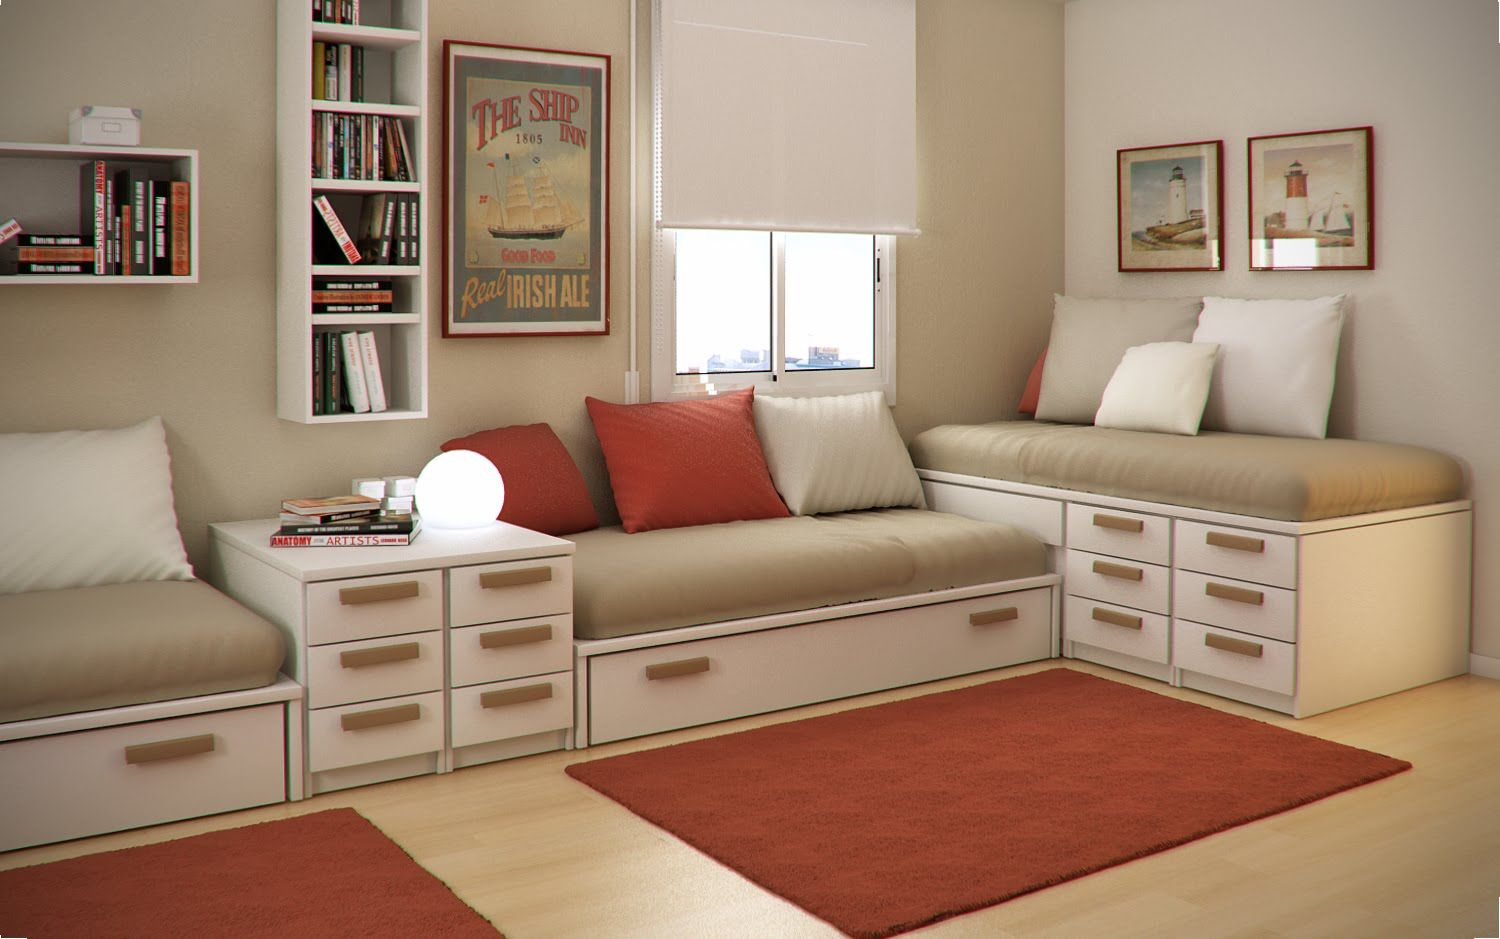 Childrens Storage Beds For Small Rooms 30 Space Saving Beds For Small Rooms  Relaxation Room Kids Rooms